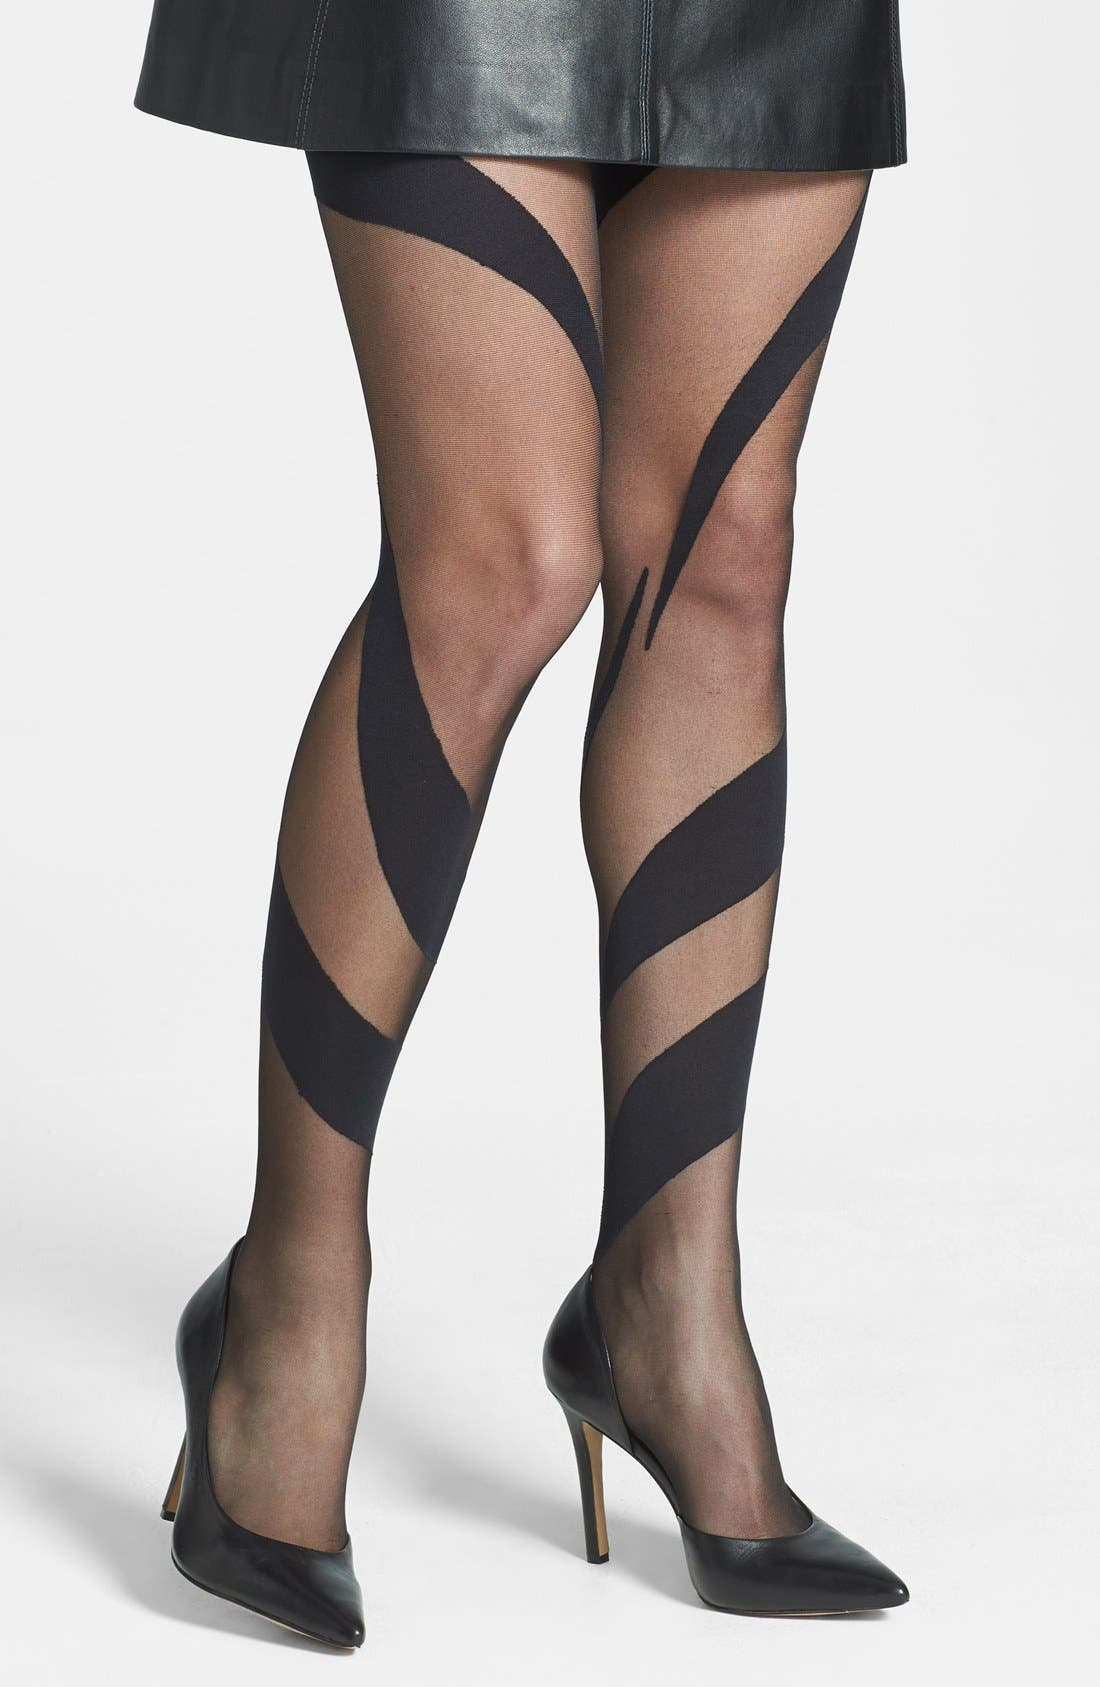 Alternate Image 1 Selected - Oroblu 'Kimberly' Tights